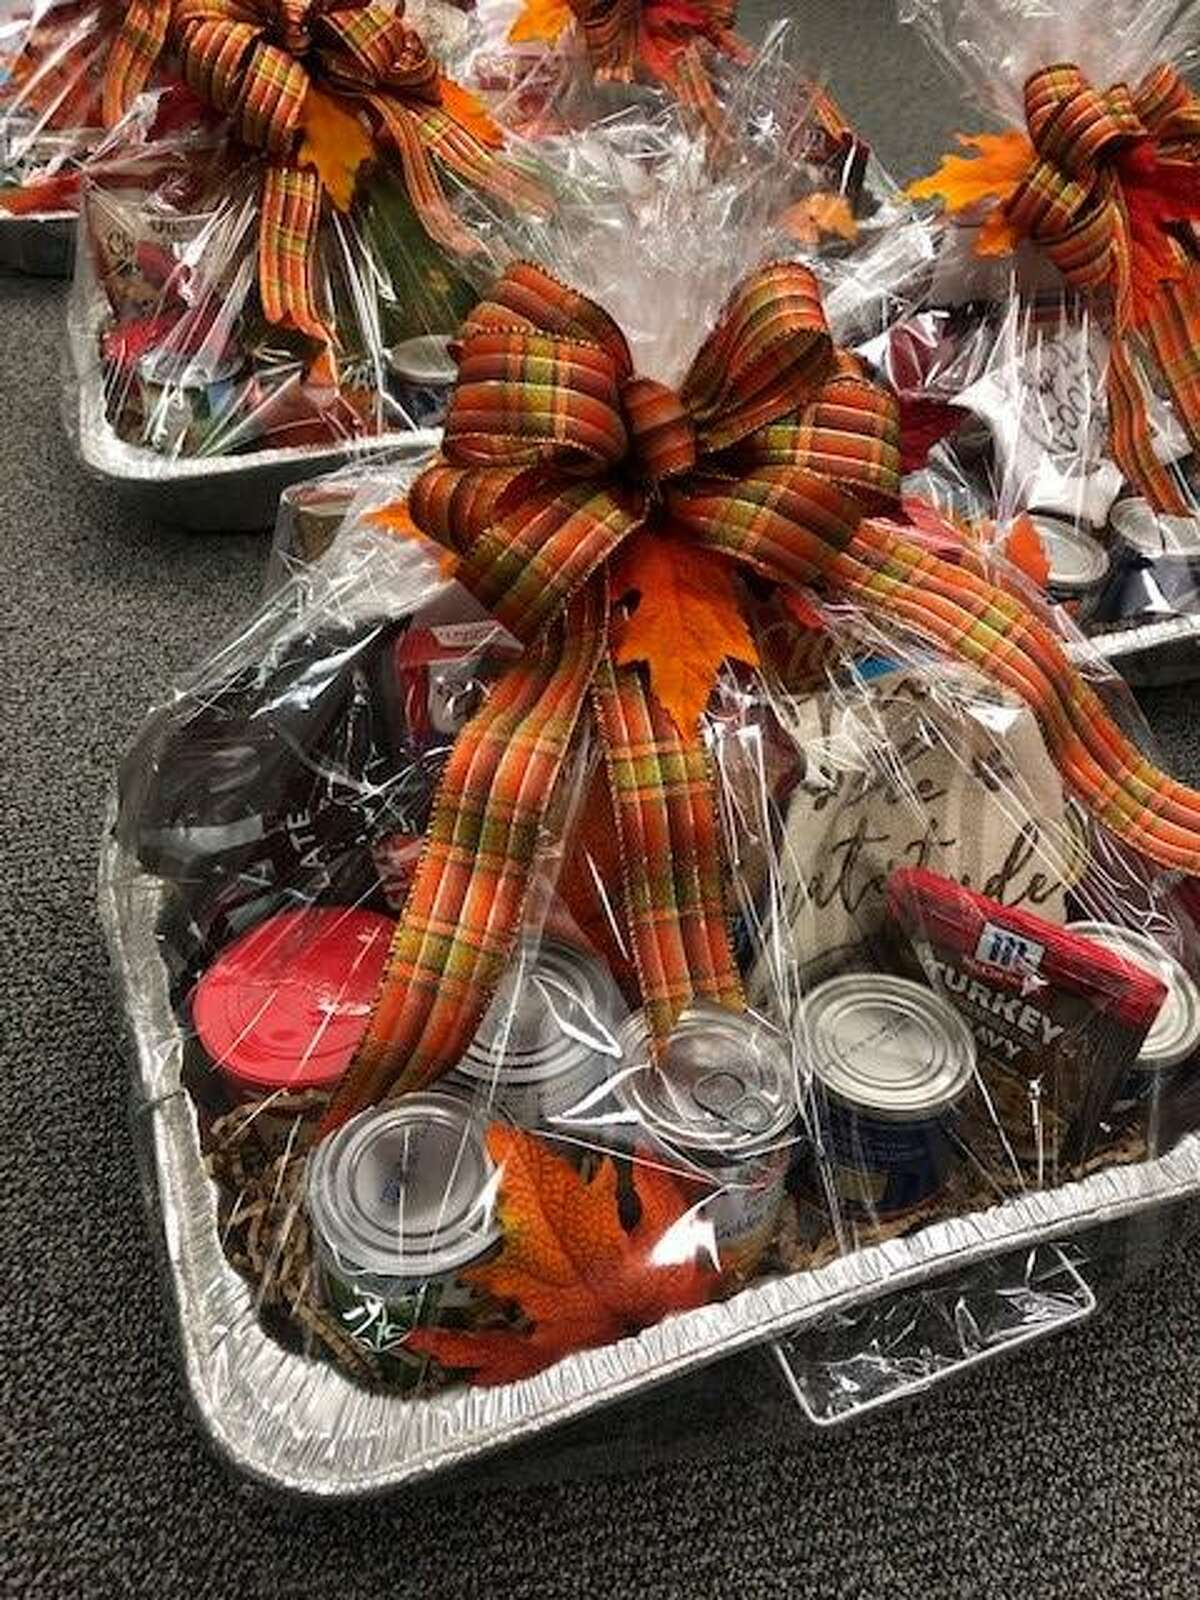 Realtors from Pearce Real Estate made and donated Thanksgiving holiday baskets for those in need within their communities. The 25